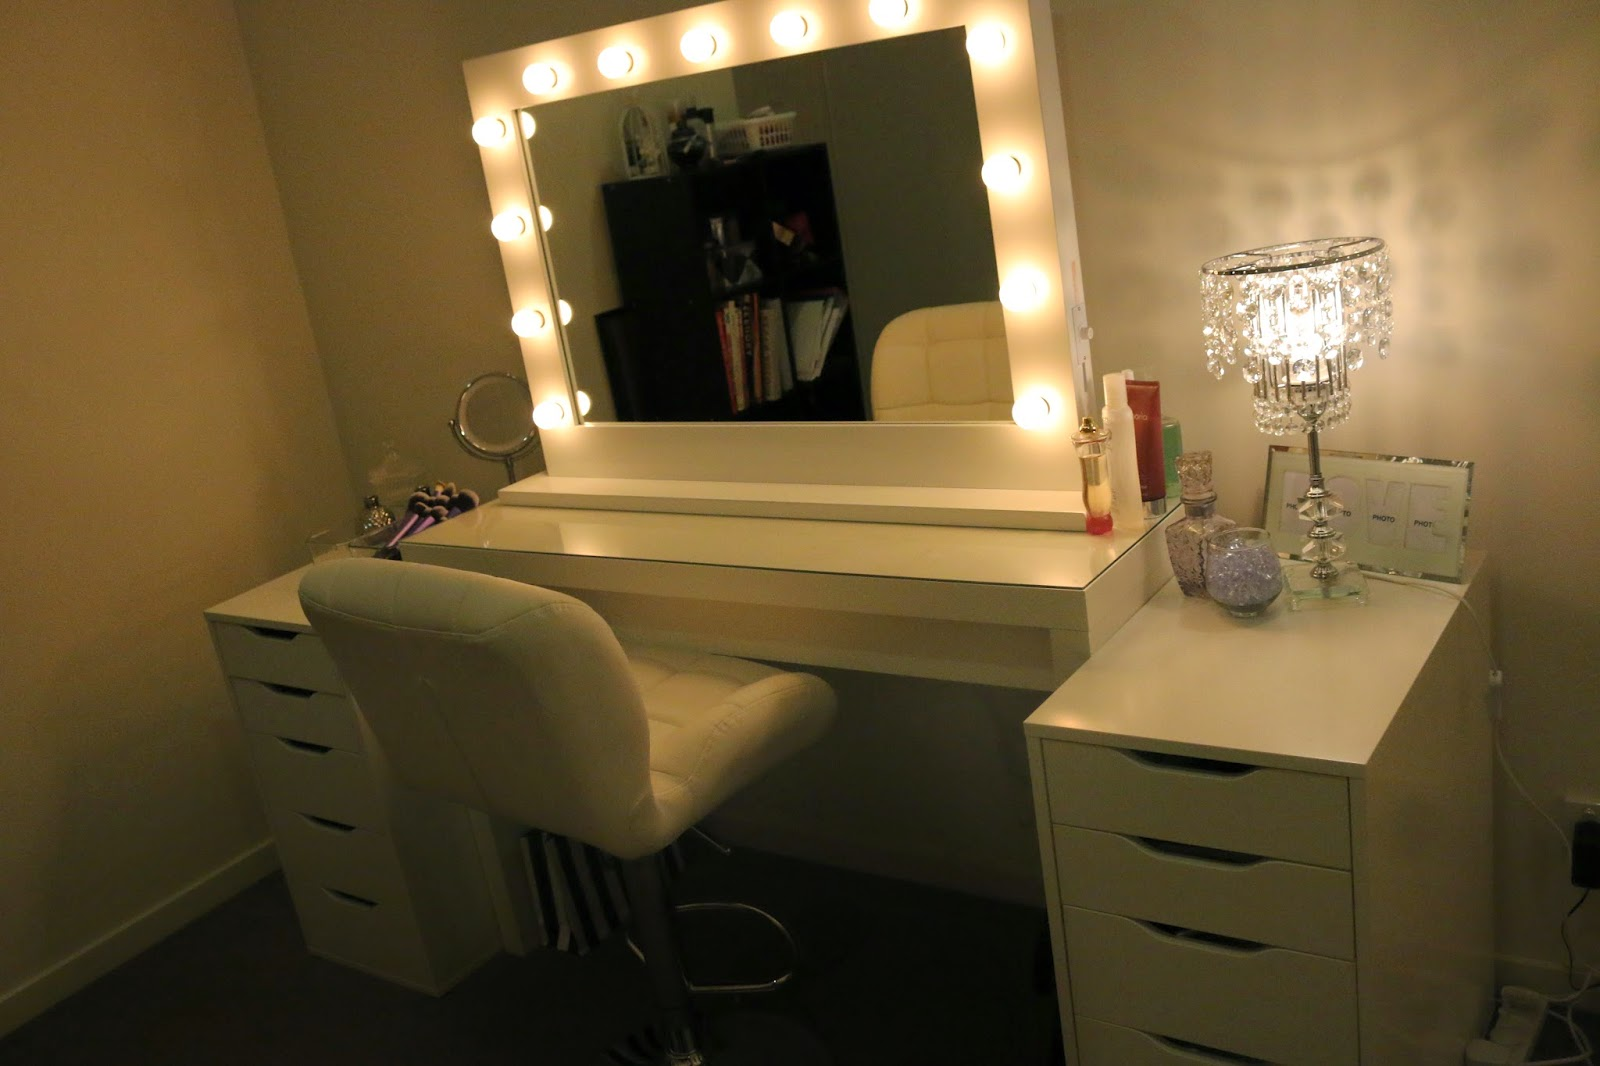 Rogue hair extensions ikea makeup vanity hollywood lights - Bedroom vanity mirror with lights ...